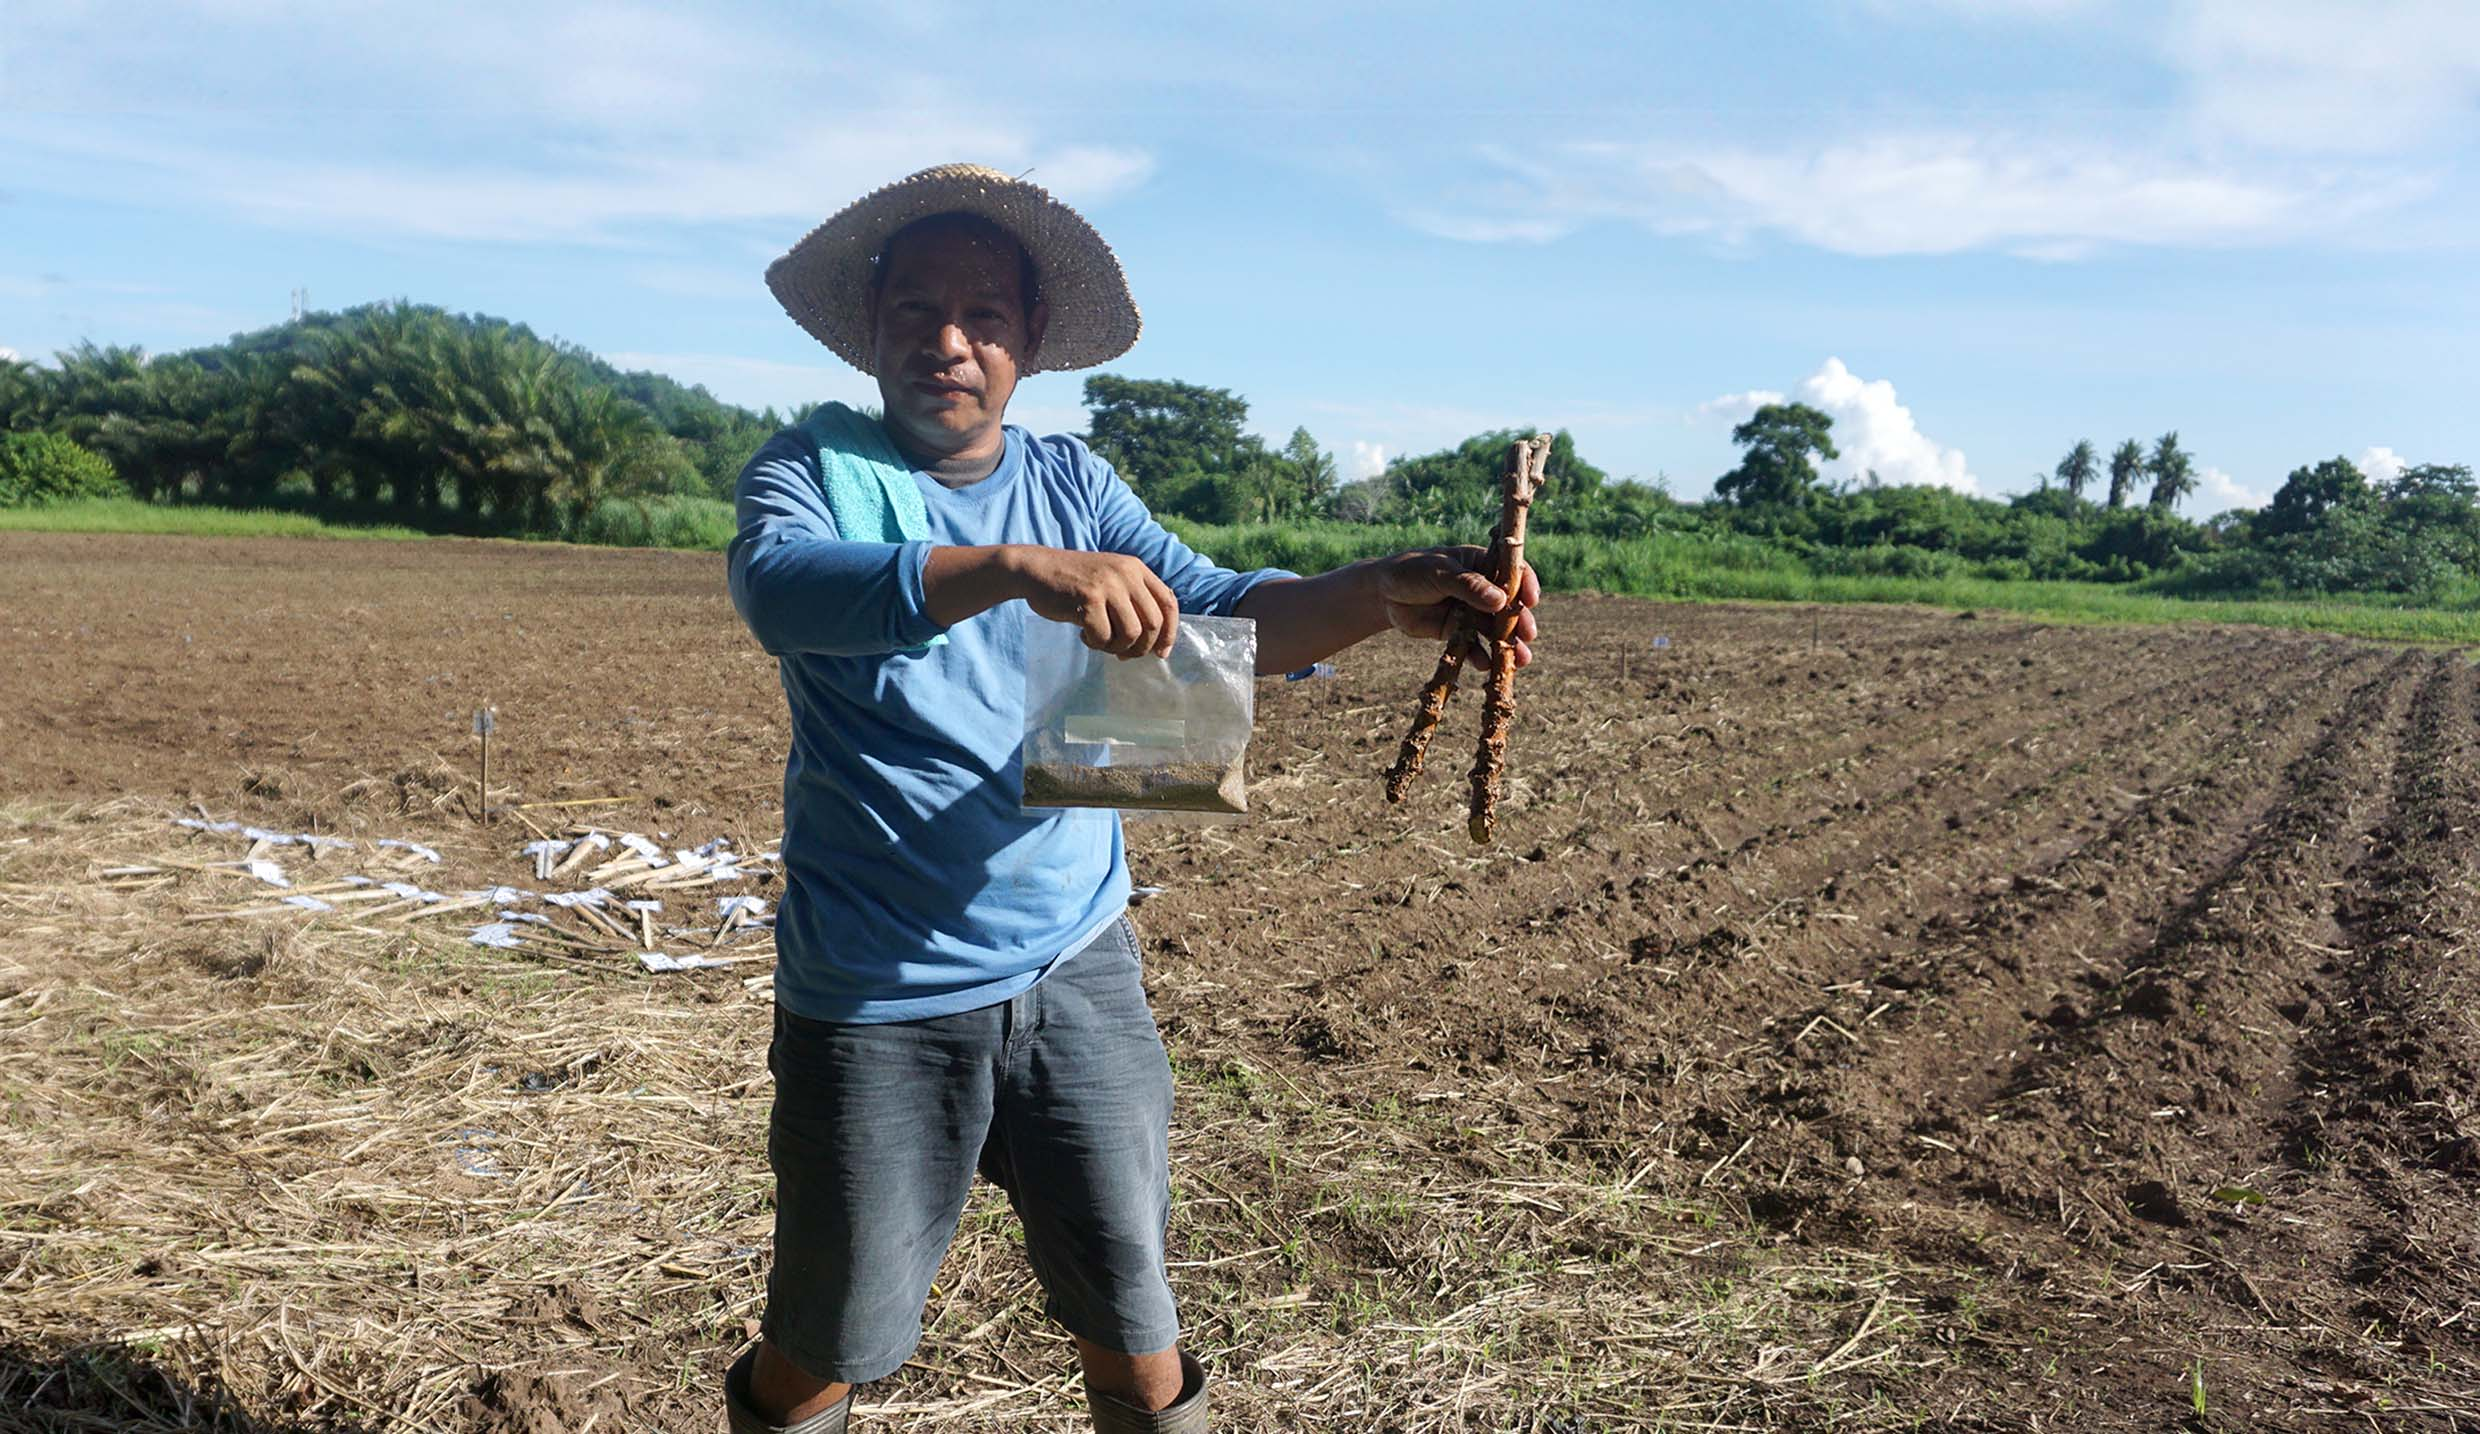 UPLB-BIOTECH biofertilizers and technologies to boost urban agriculture in Cabuyao City